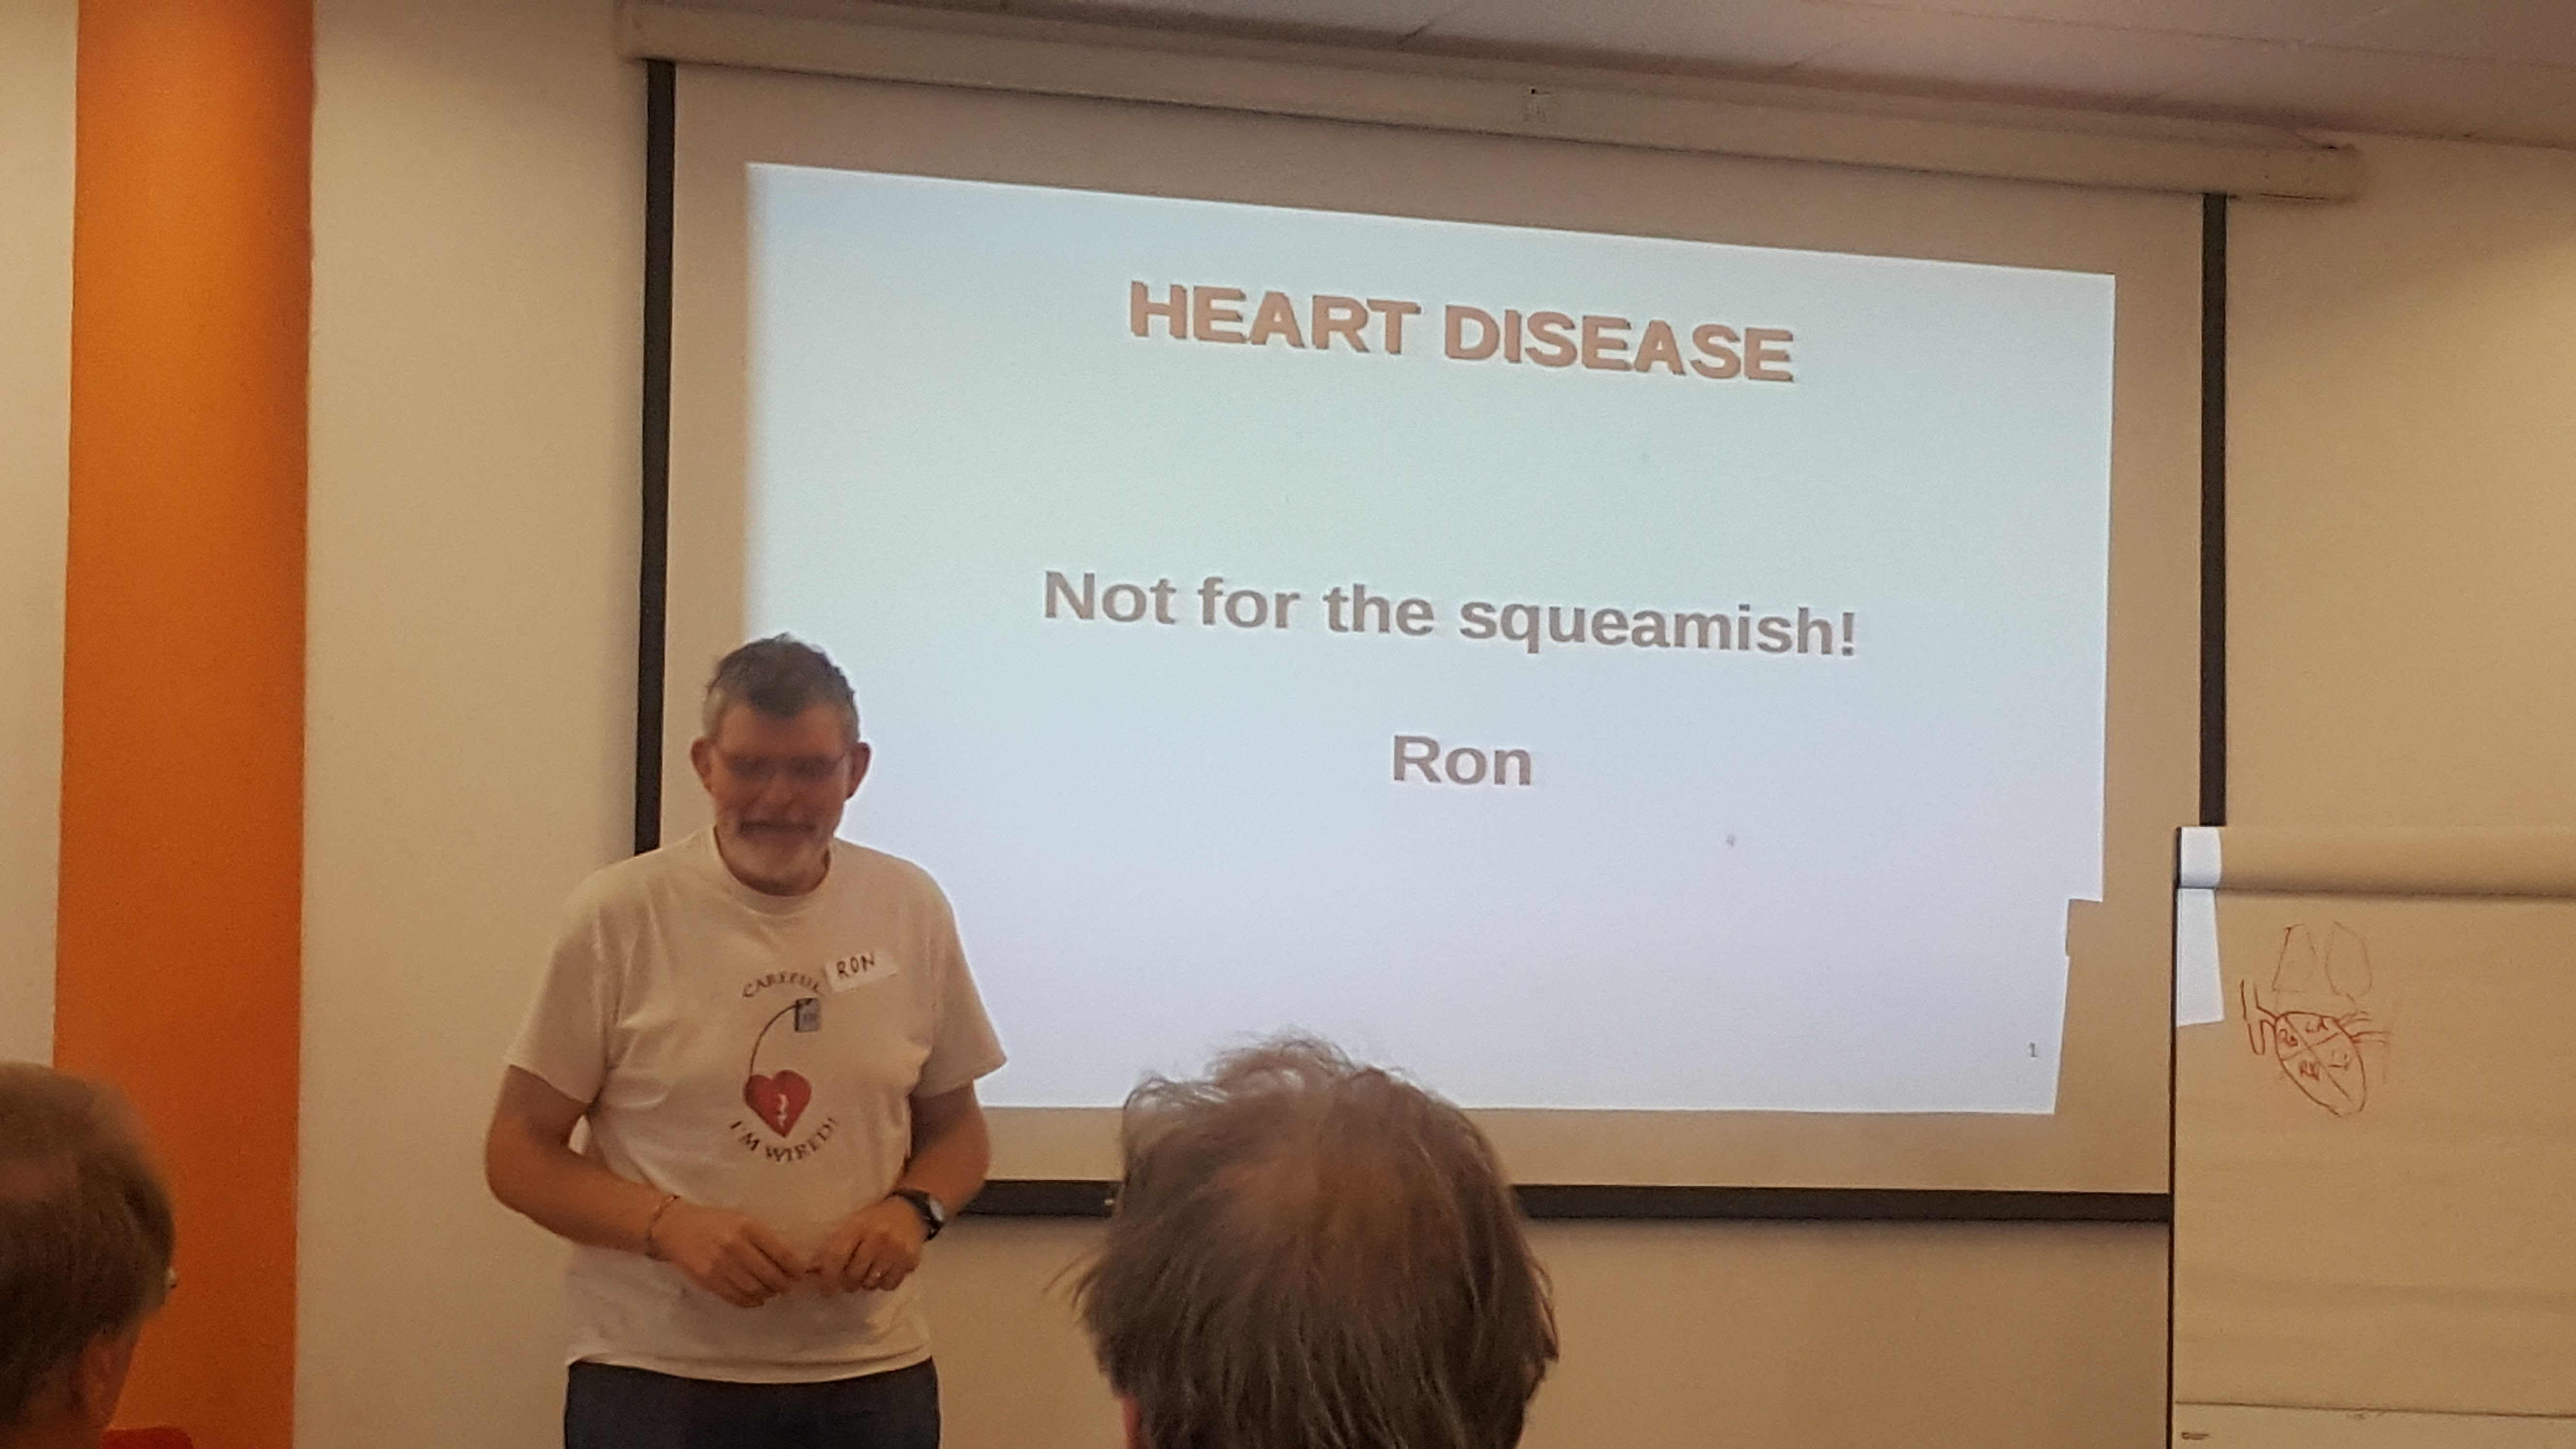 Ron giving a great talk that also serves as a warning